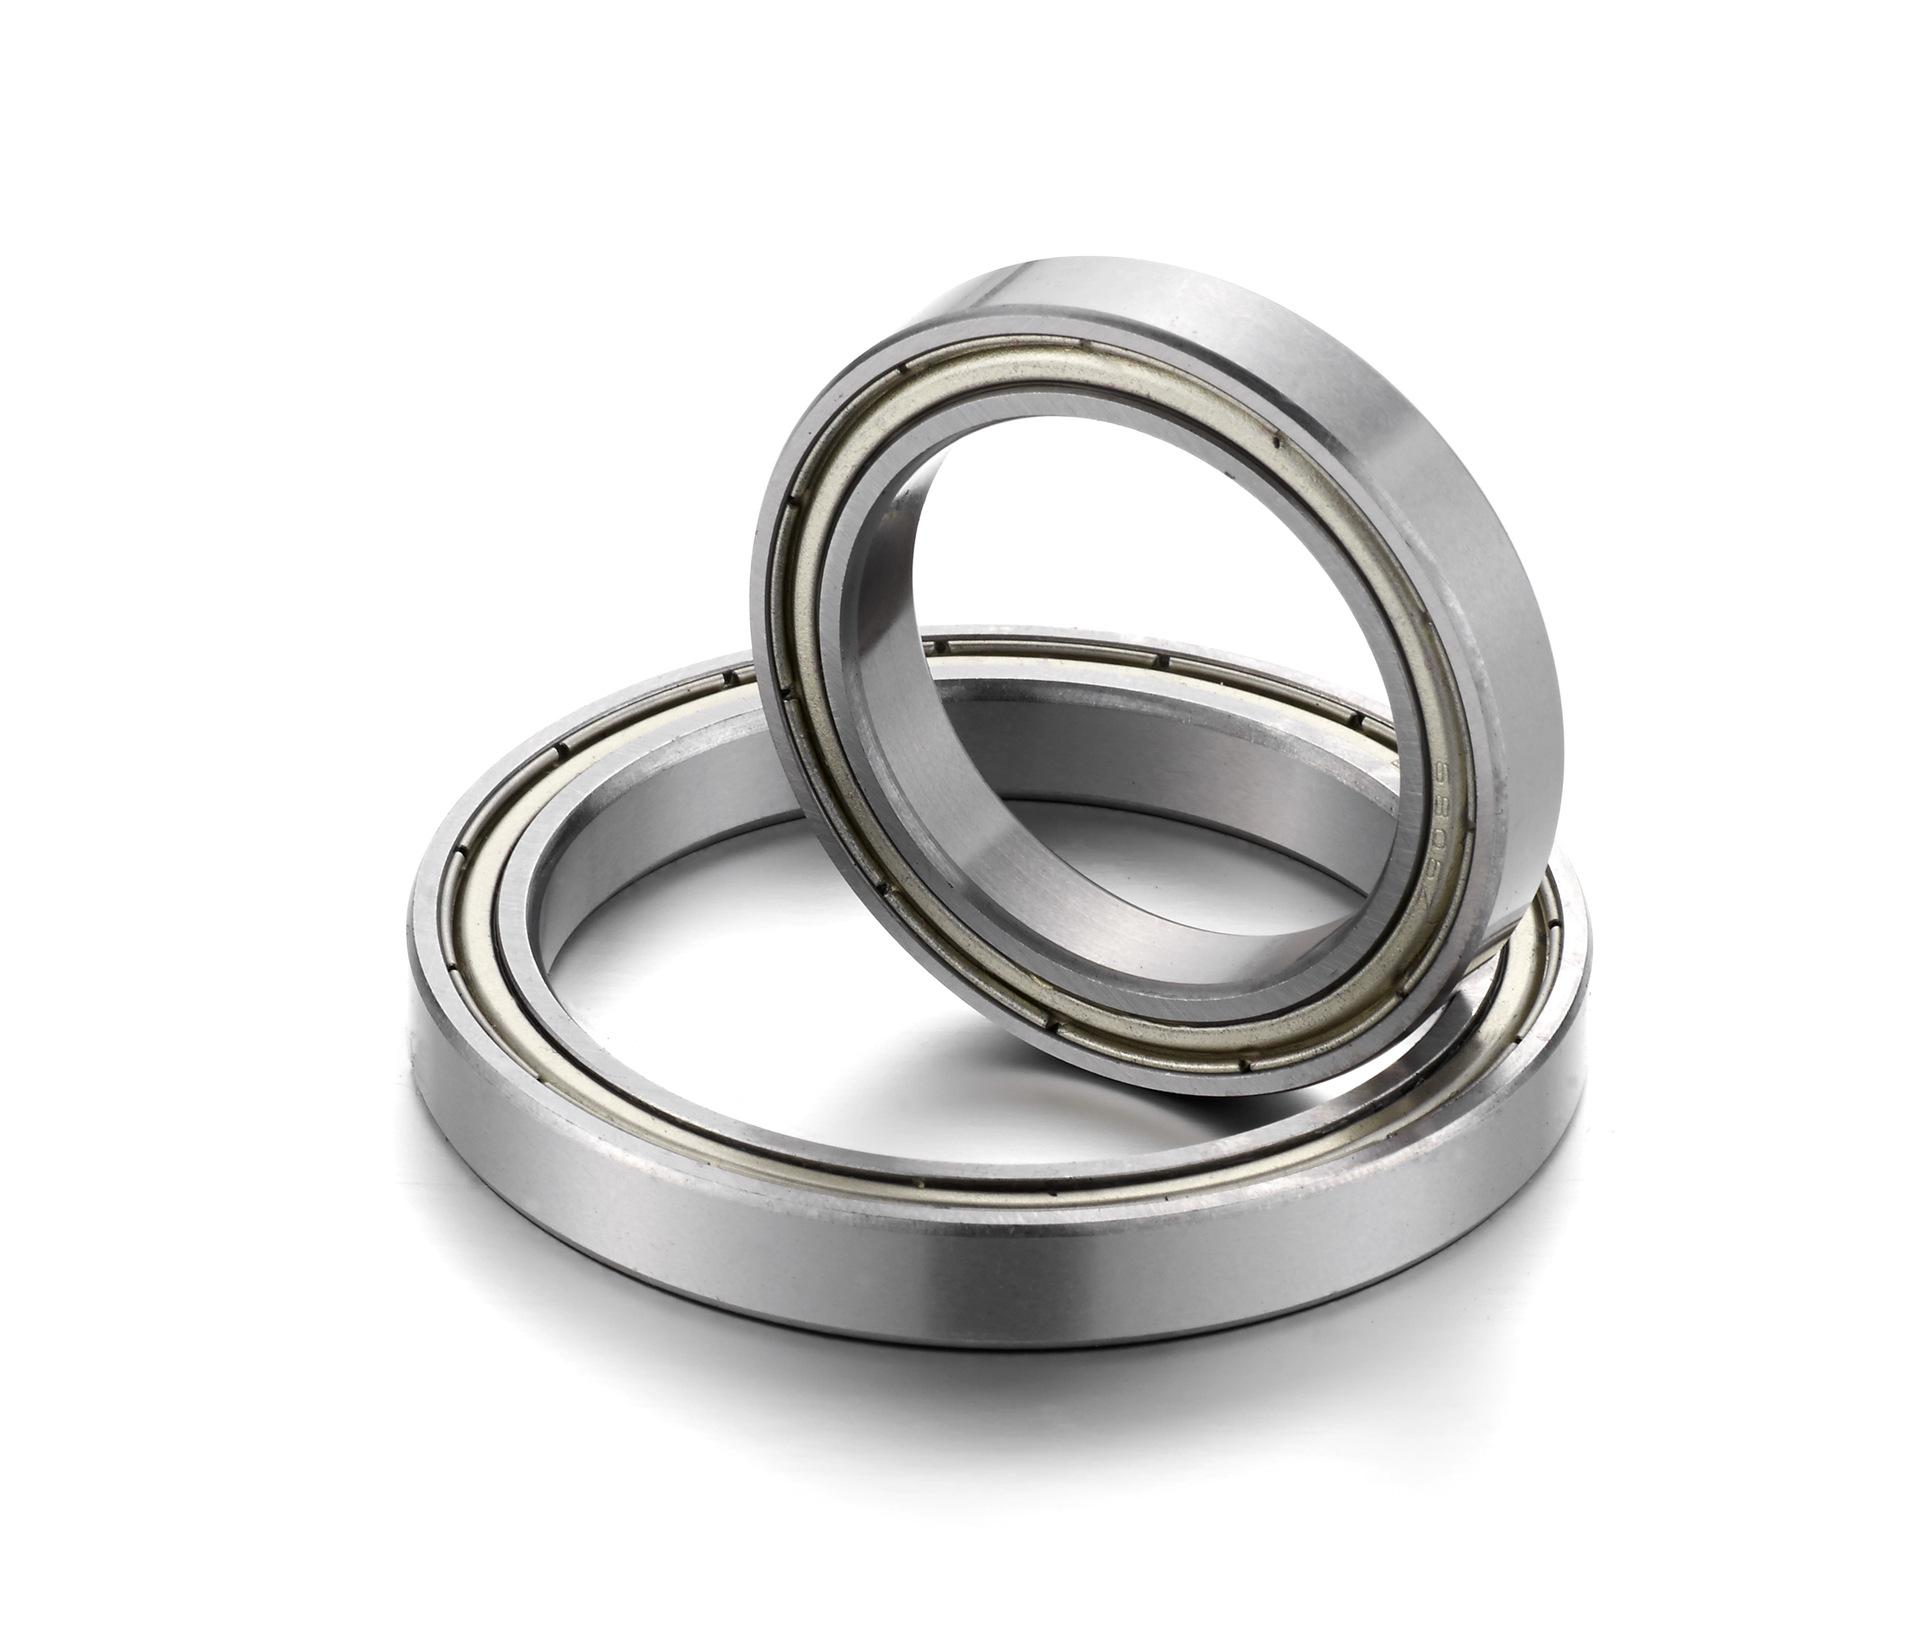 6824M ABEC-1  120x150x16mm Metric Thin Section Bearings brass cage 61824M 6830m abec 1 150x190x20mm metric thin section bearings 61830m brass cage